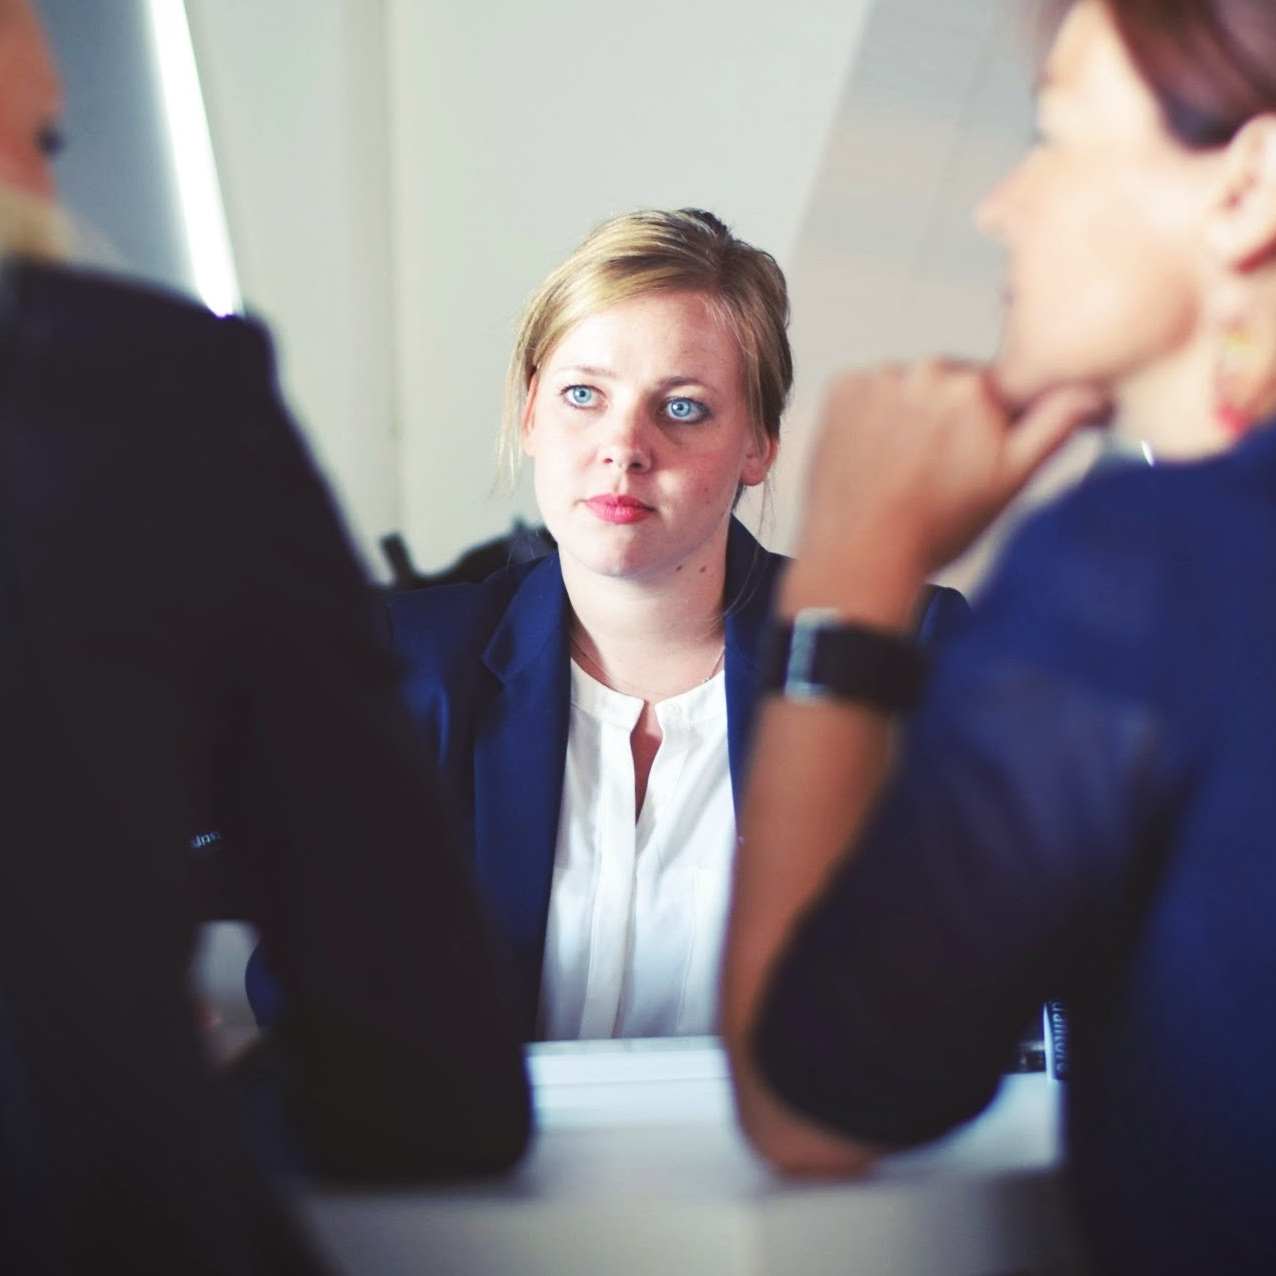 I want to improve my interview skills -